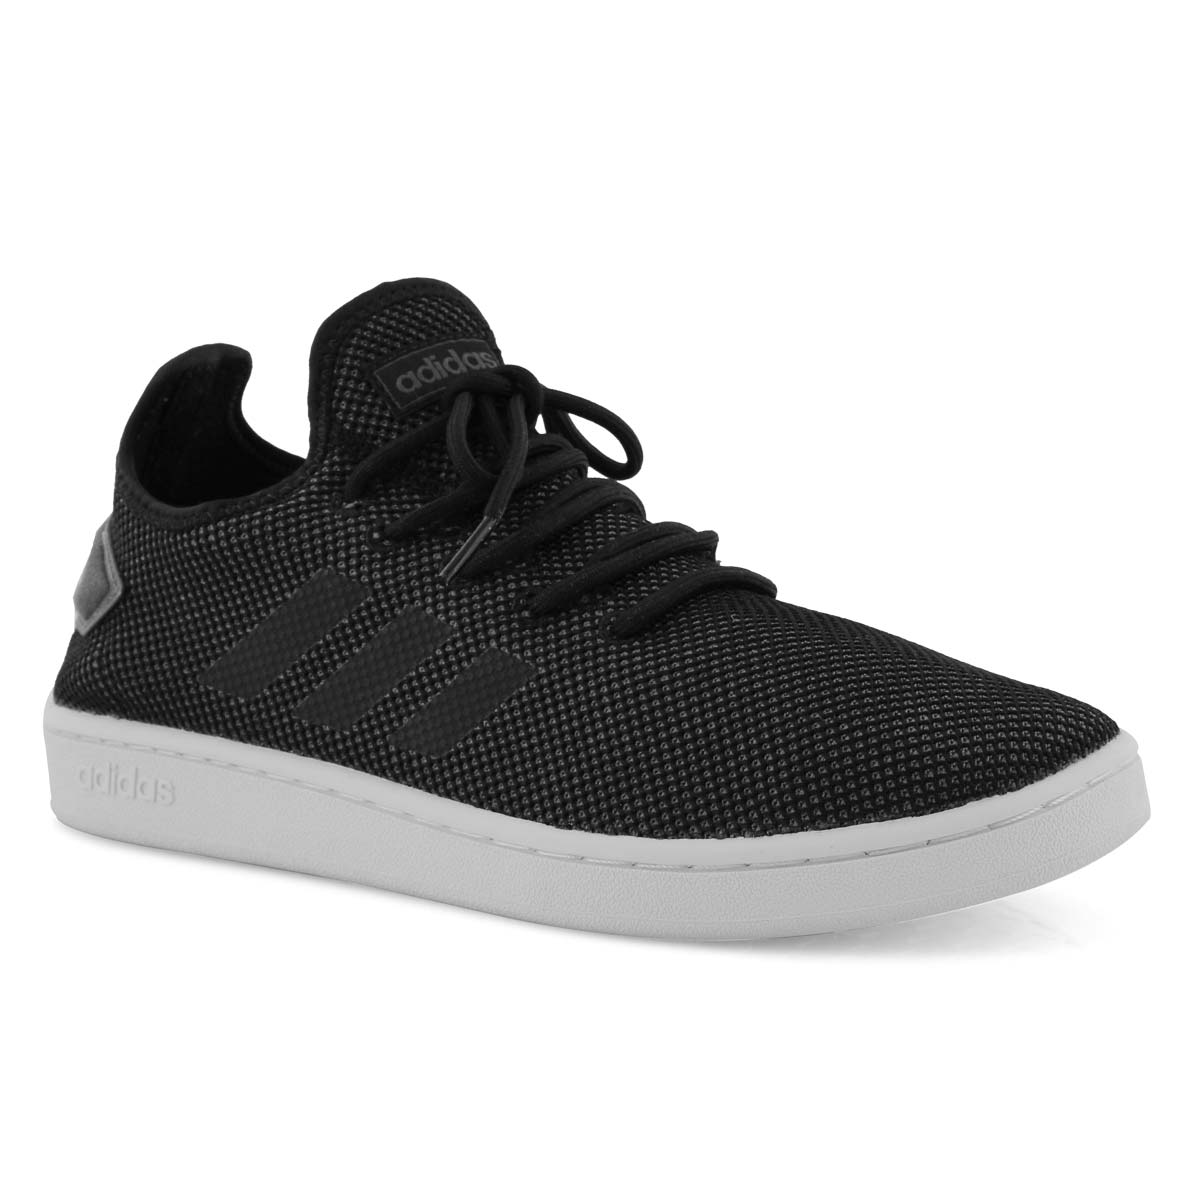 comprare on line 55bfd 36412 Men's COURT ADAPT black/black running shoes